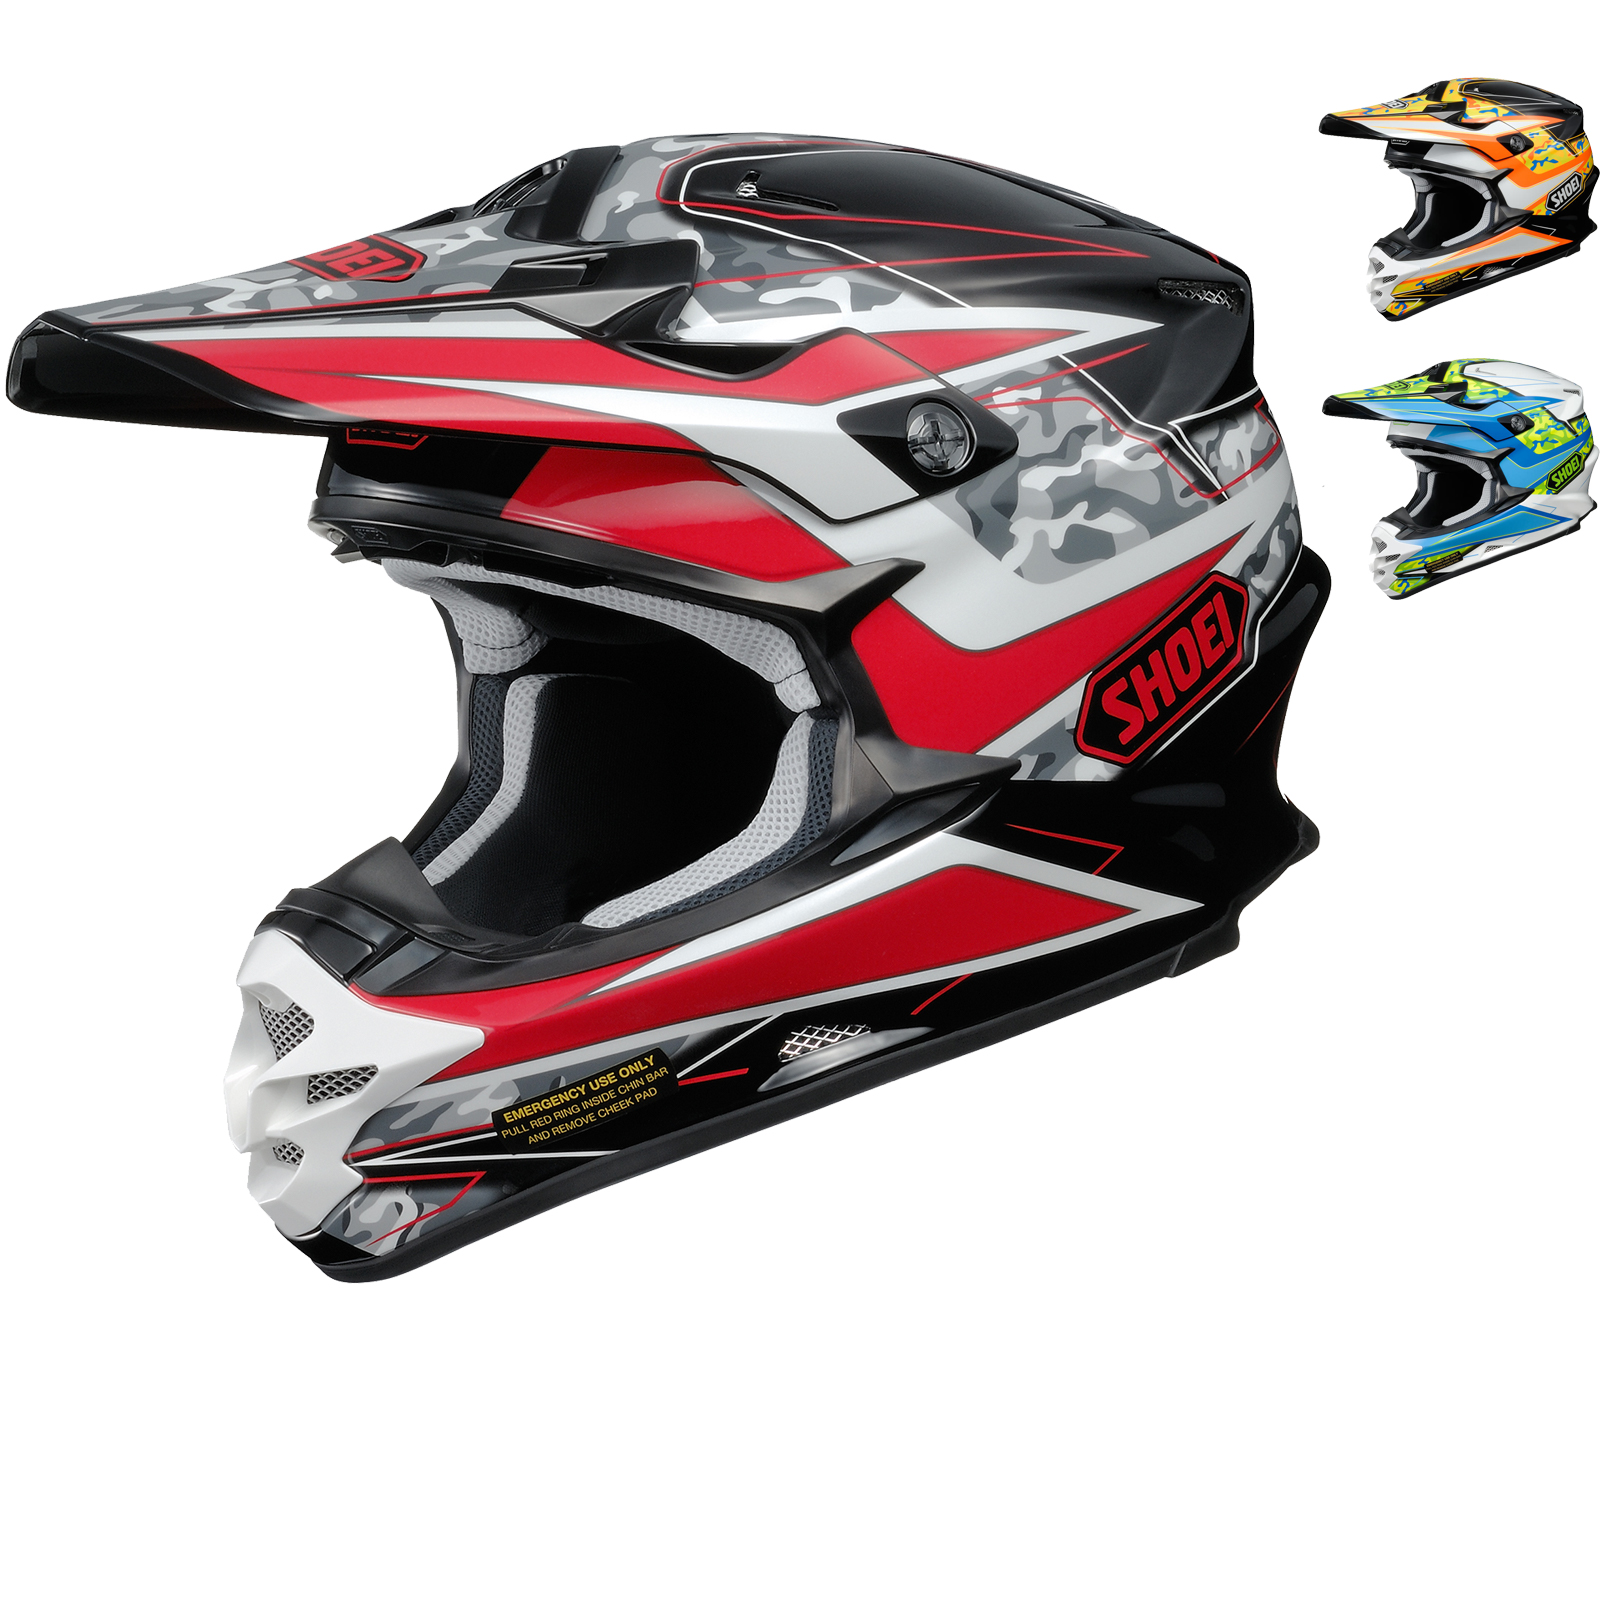 shoei vfx w turmoil motocross helmet. Black Bedroom Furniture Sets. Home Design Ideas